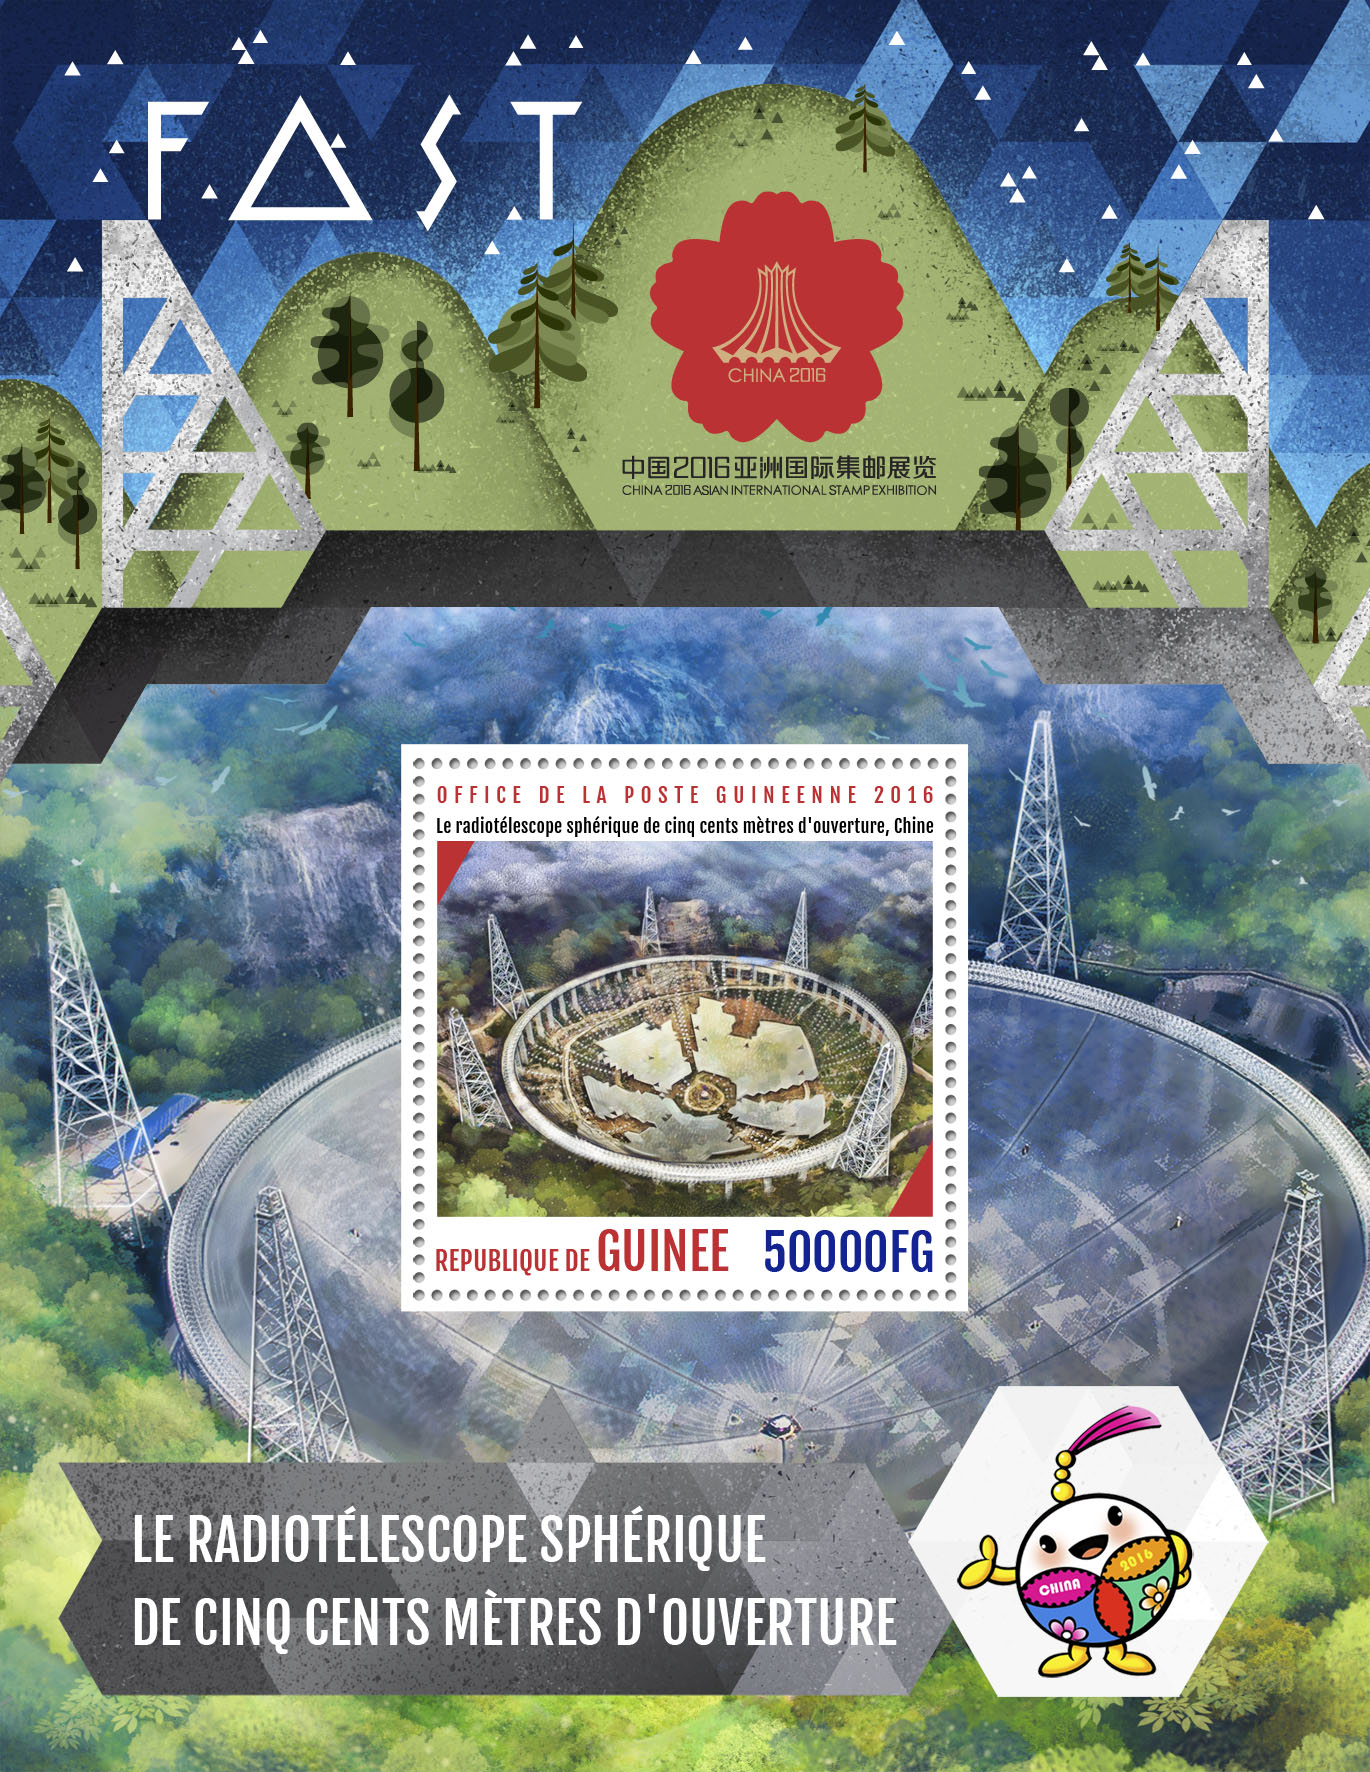 Radio Telescope - Issue of Guinée postage stamps